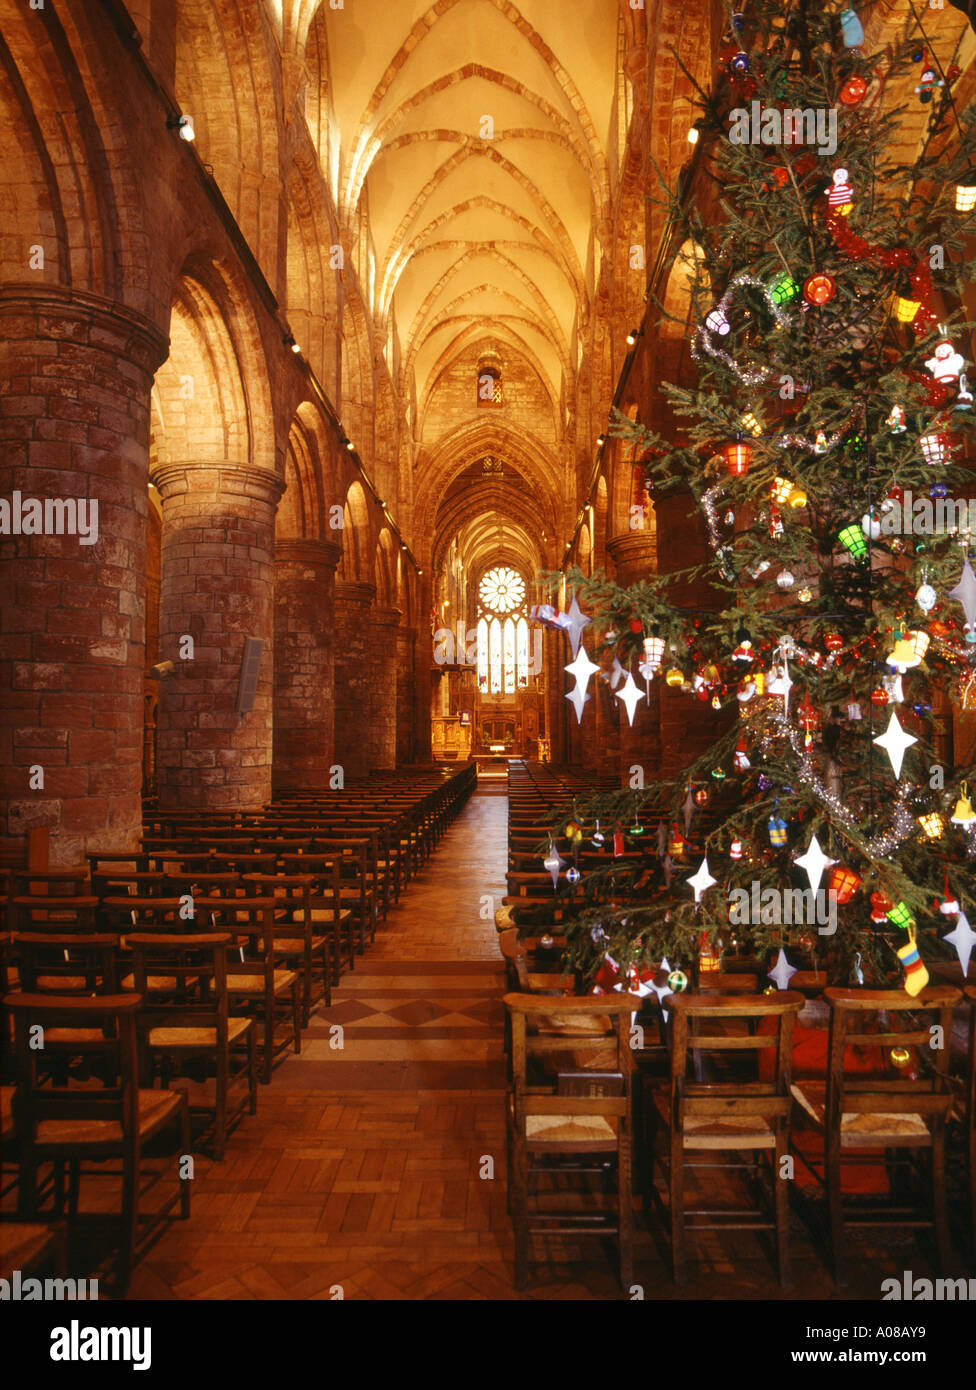 dh St Magnus Cathedral KIRKWALL ORKNEY Orkneys Cathedrals at Christmas tree and aisle interior Stock Photo